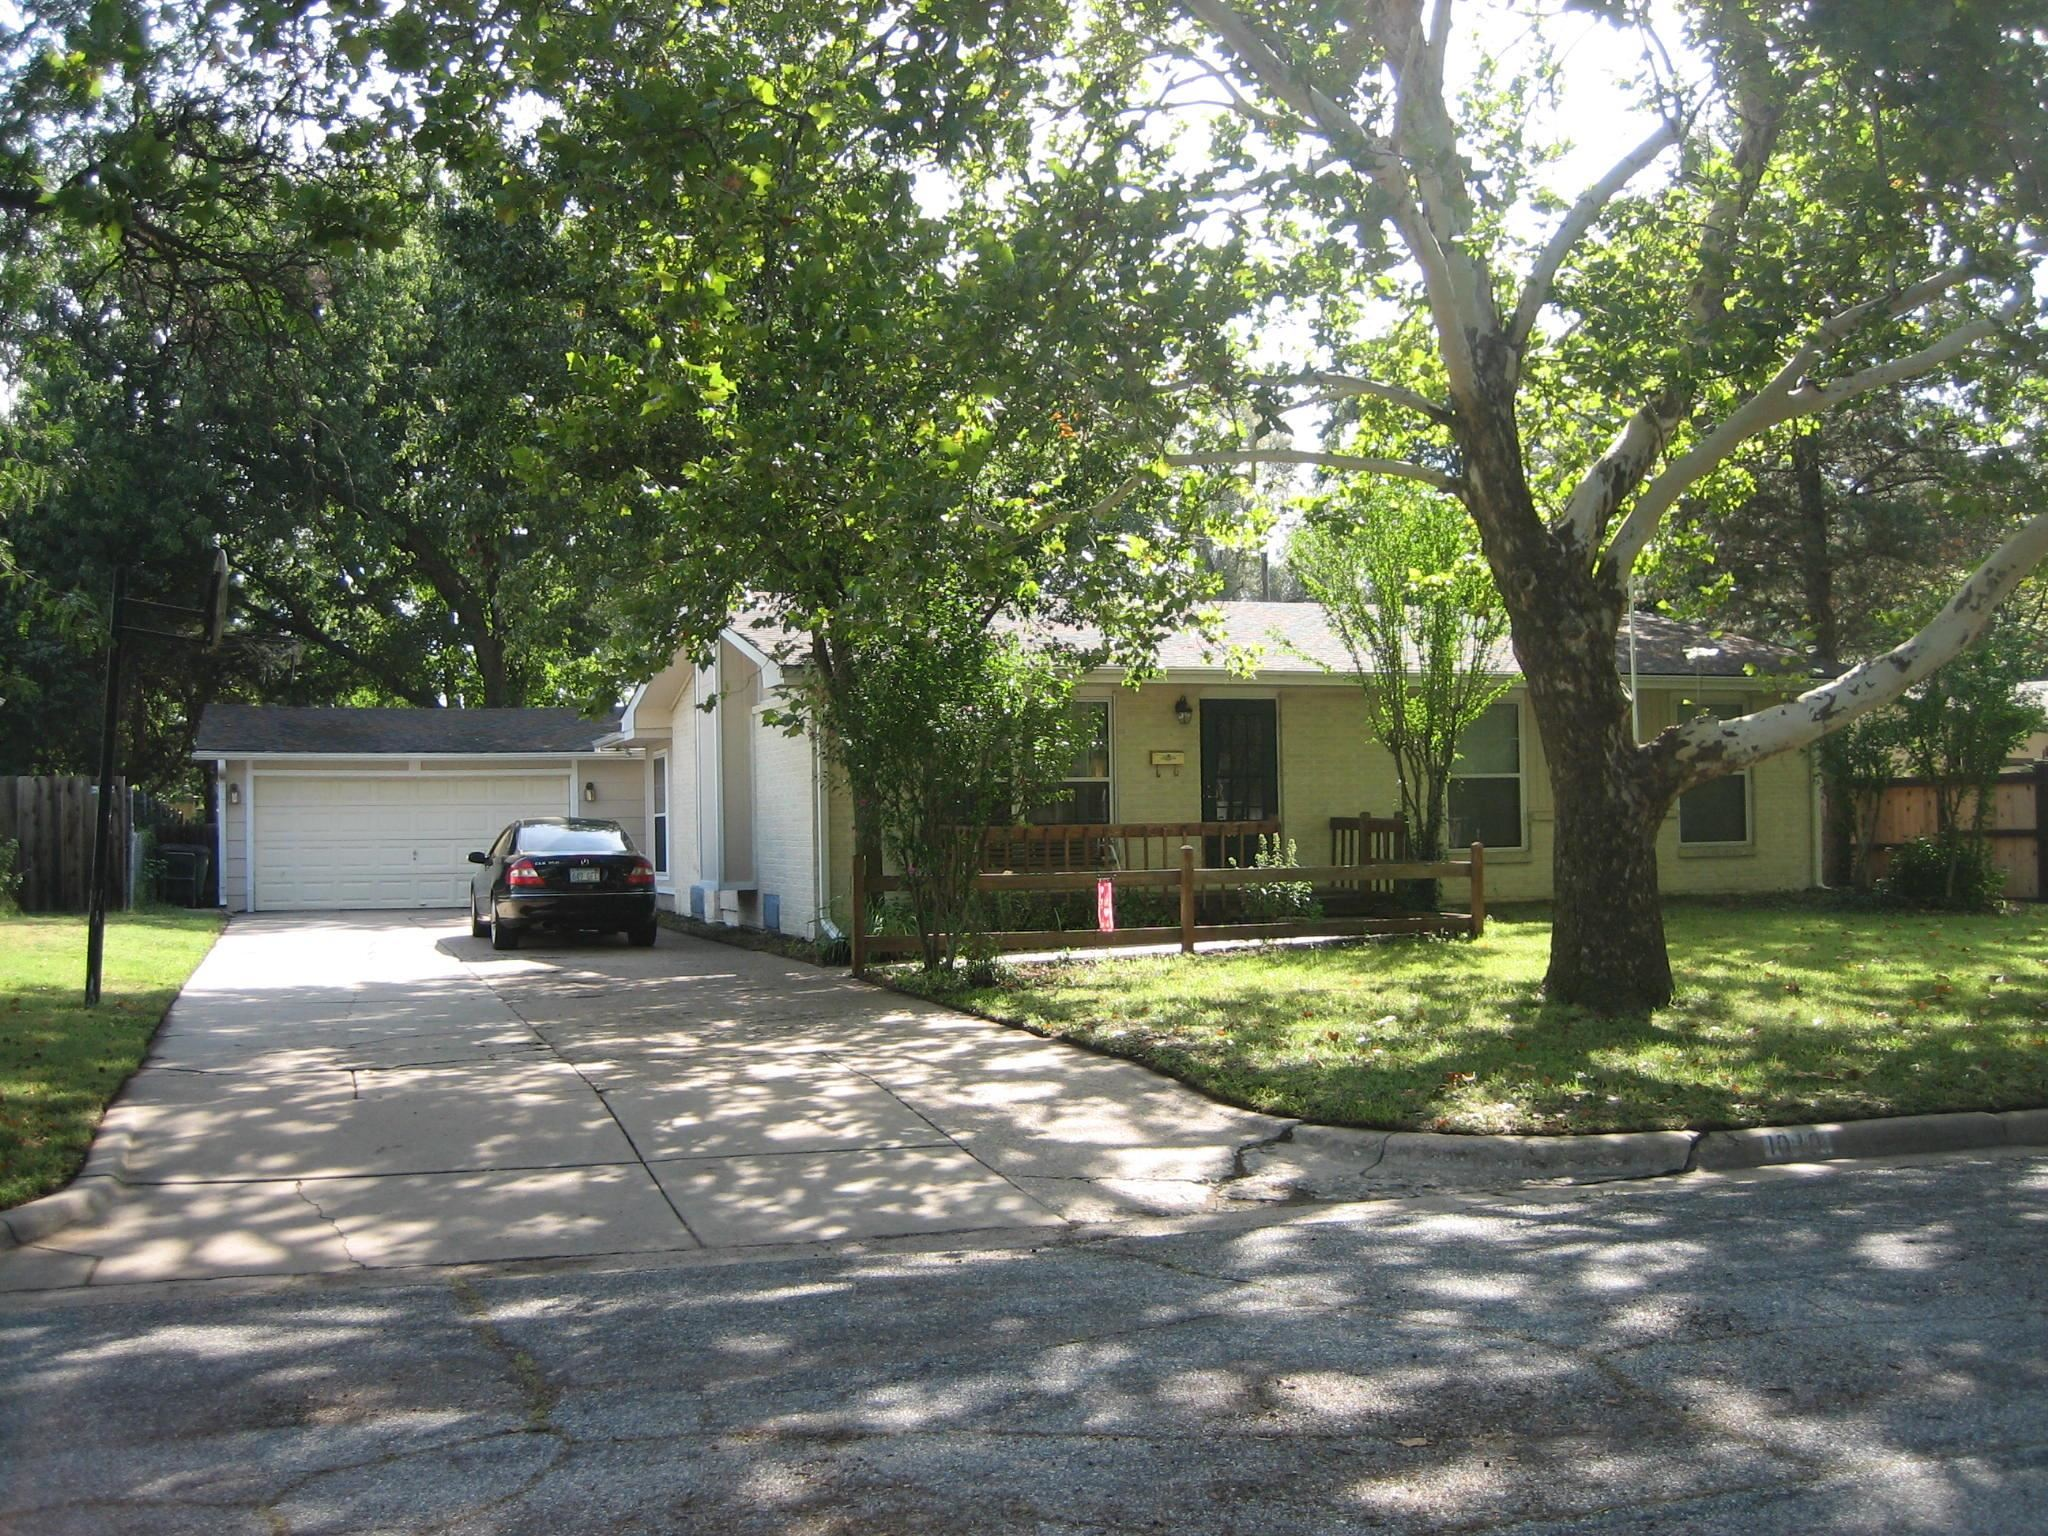 THIS HOME HAS BEEN METICULOUSLY MAINTAINED AND IS LOCATED IN THE MUCH SOUGHT AFTER QUIET NEIGHBORHOO